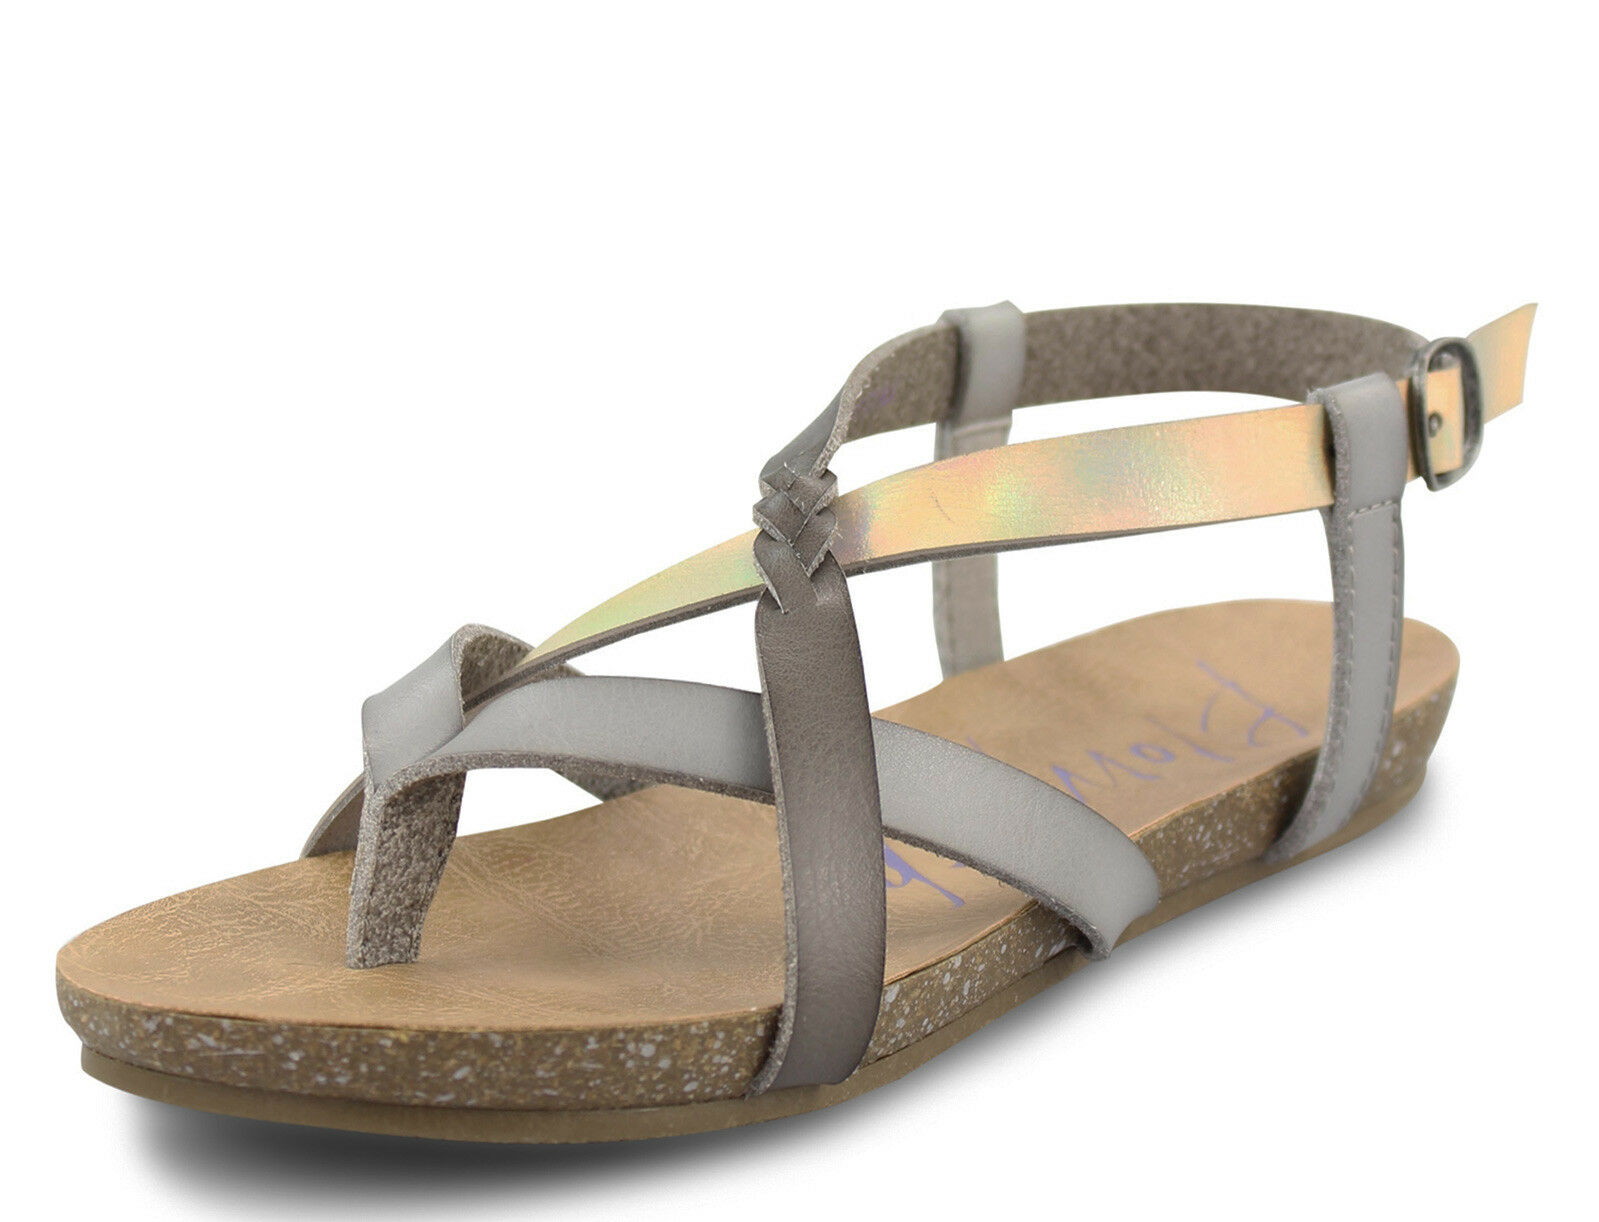 Blowfish NEW Granola B ash lunar street gris argent flat sandals Tailles UK 3-8